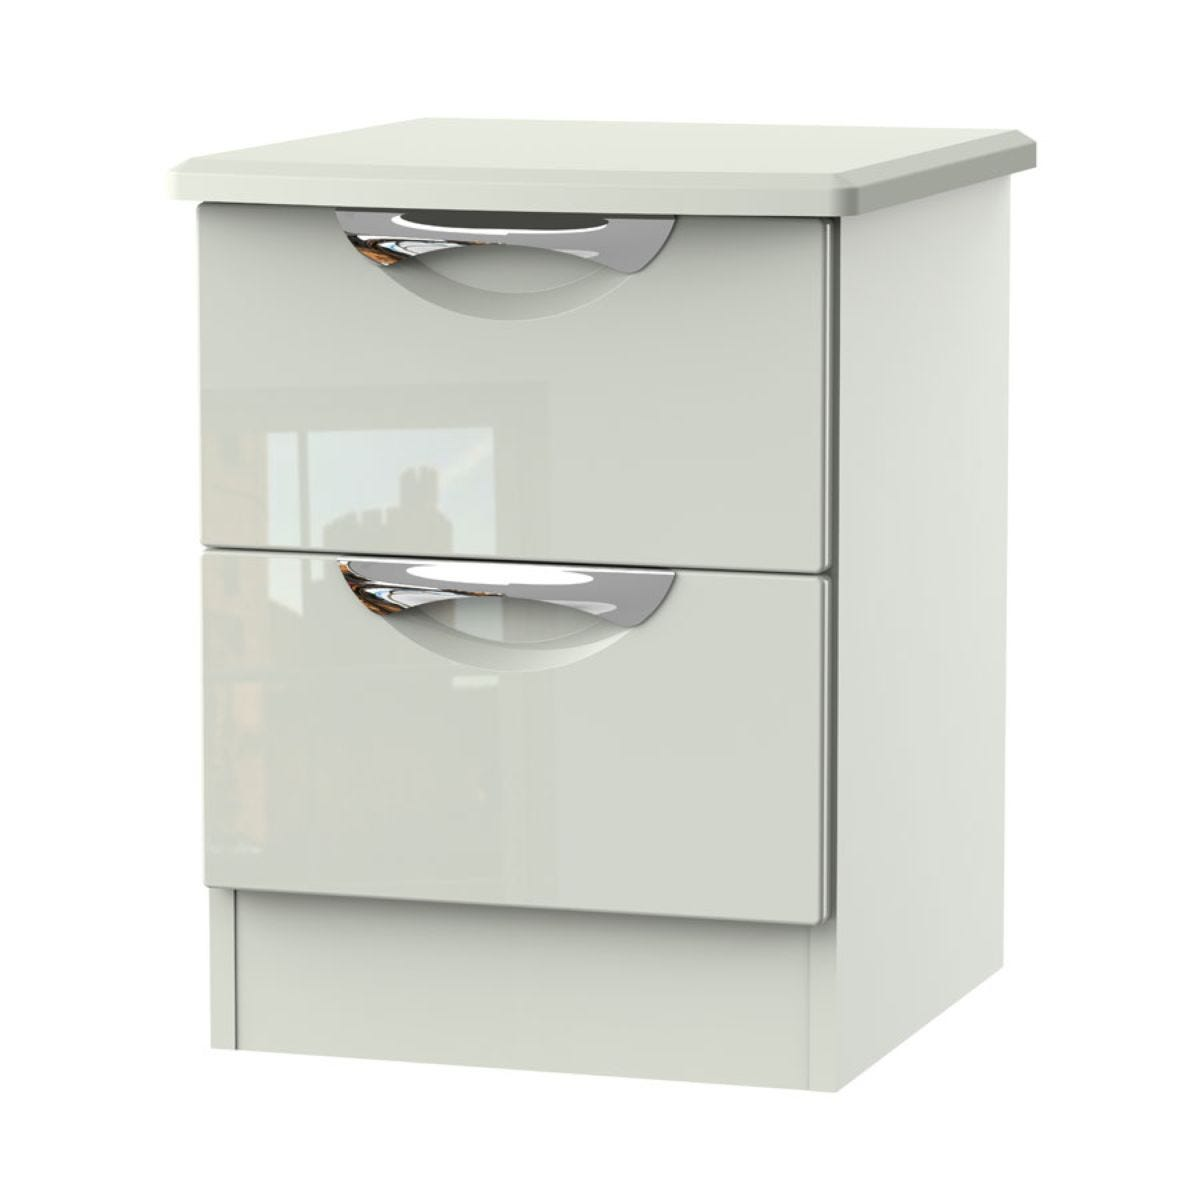 Indices 2-Drawer Bedside Cabinet - White/Grey